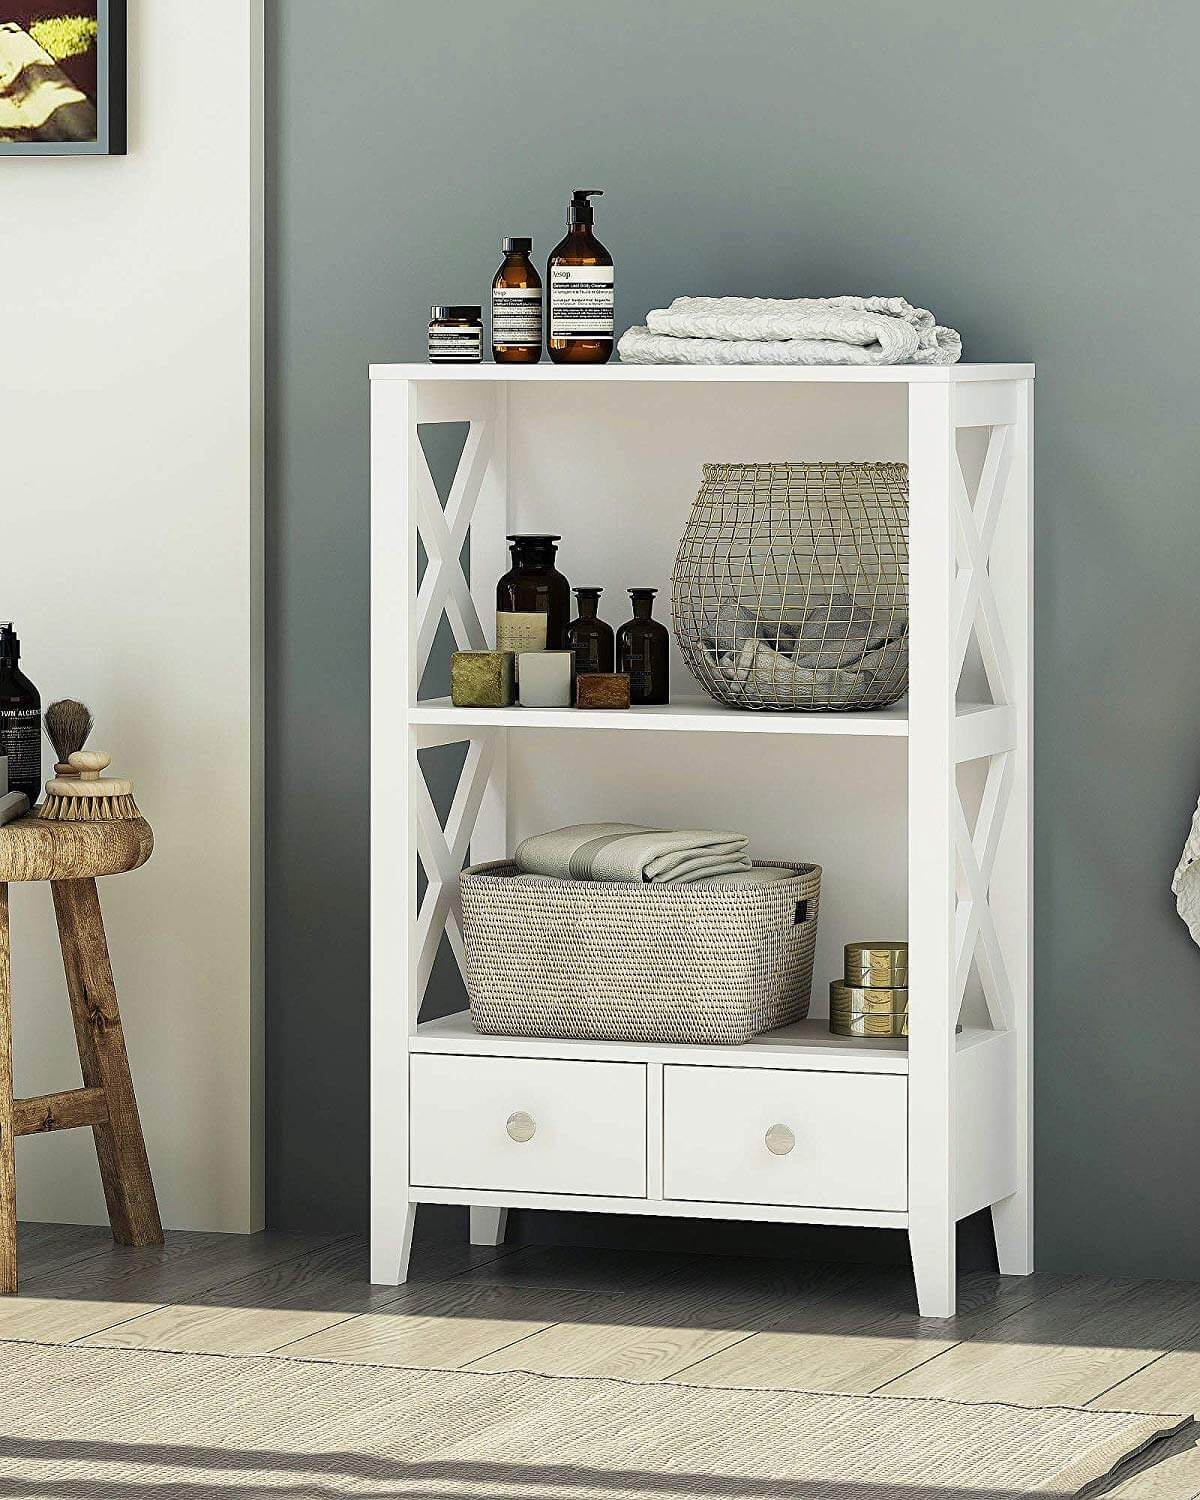 Country Style Cabinet with Open Shelving